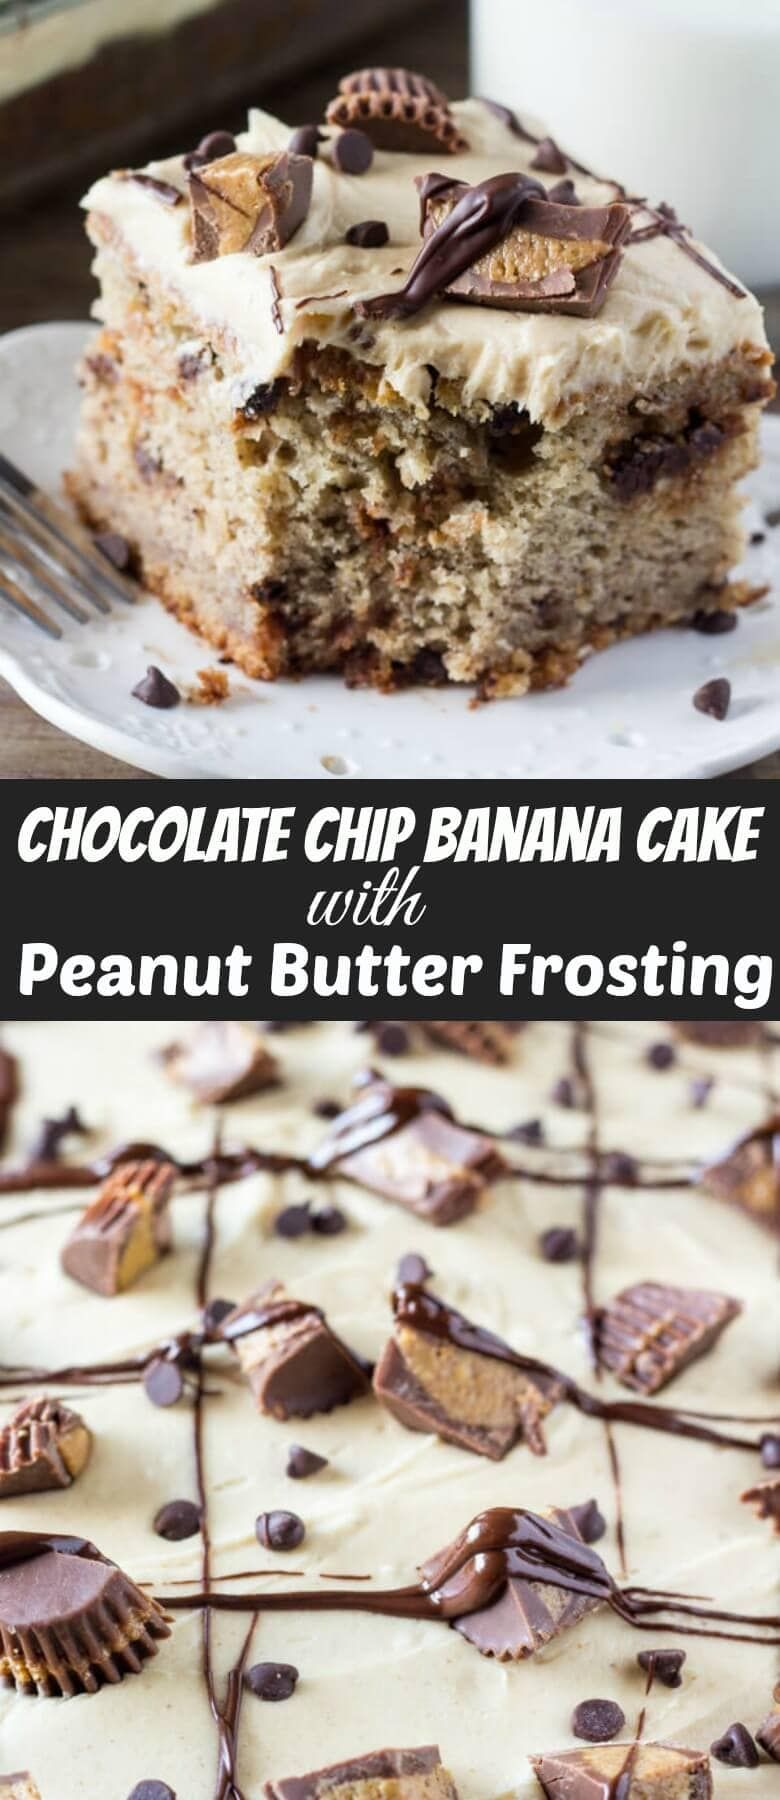 Chocolate Chip Banana Cake with Peanut Butter Frosting – Oh Sweet Basil